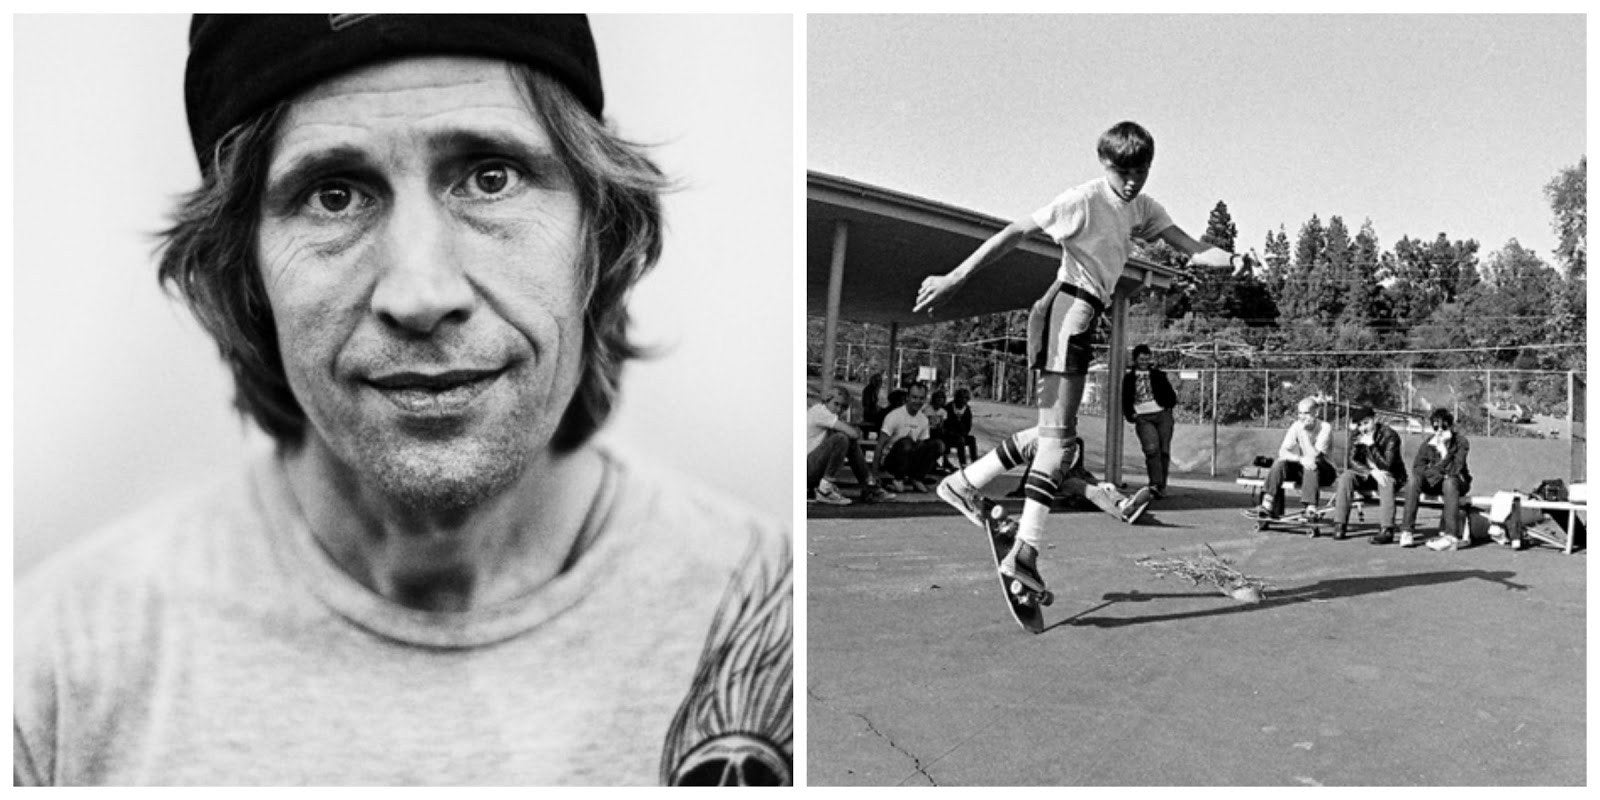 Skate With A Personal Idol like the Freestyle Skateboarding Legend Rodney Mullen